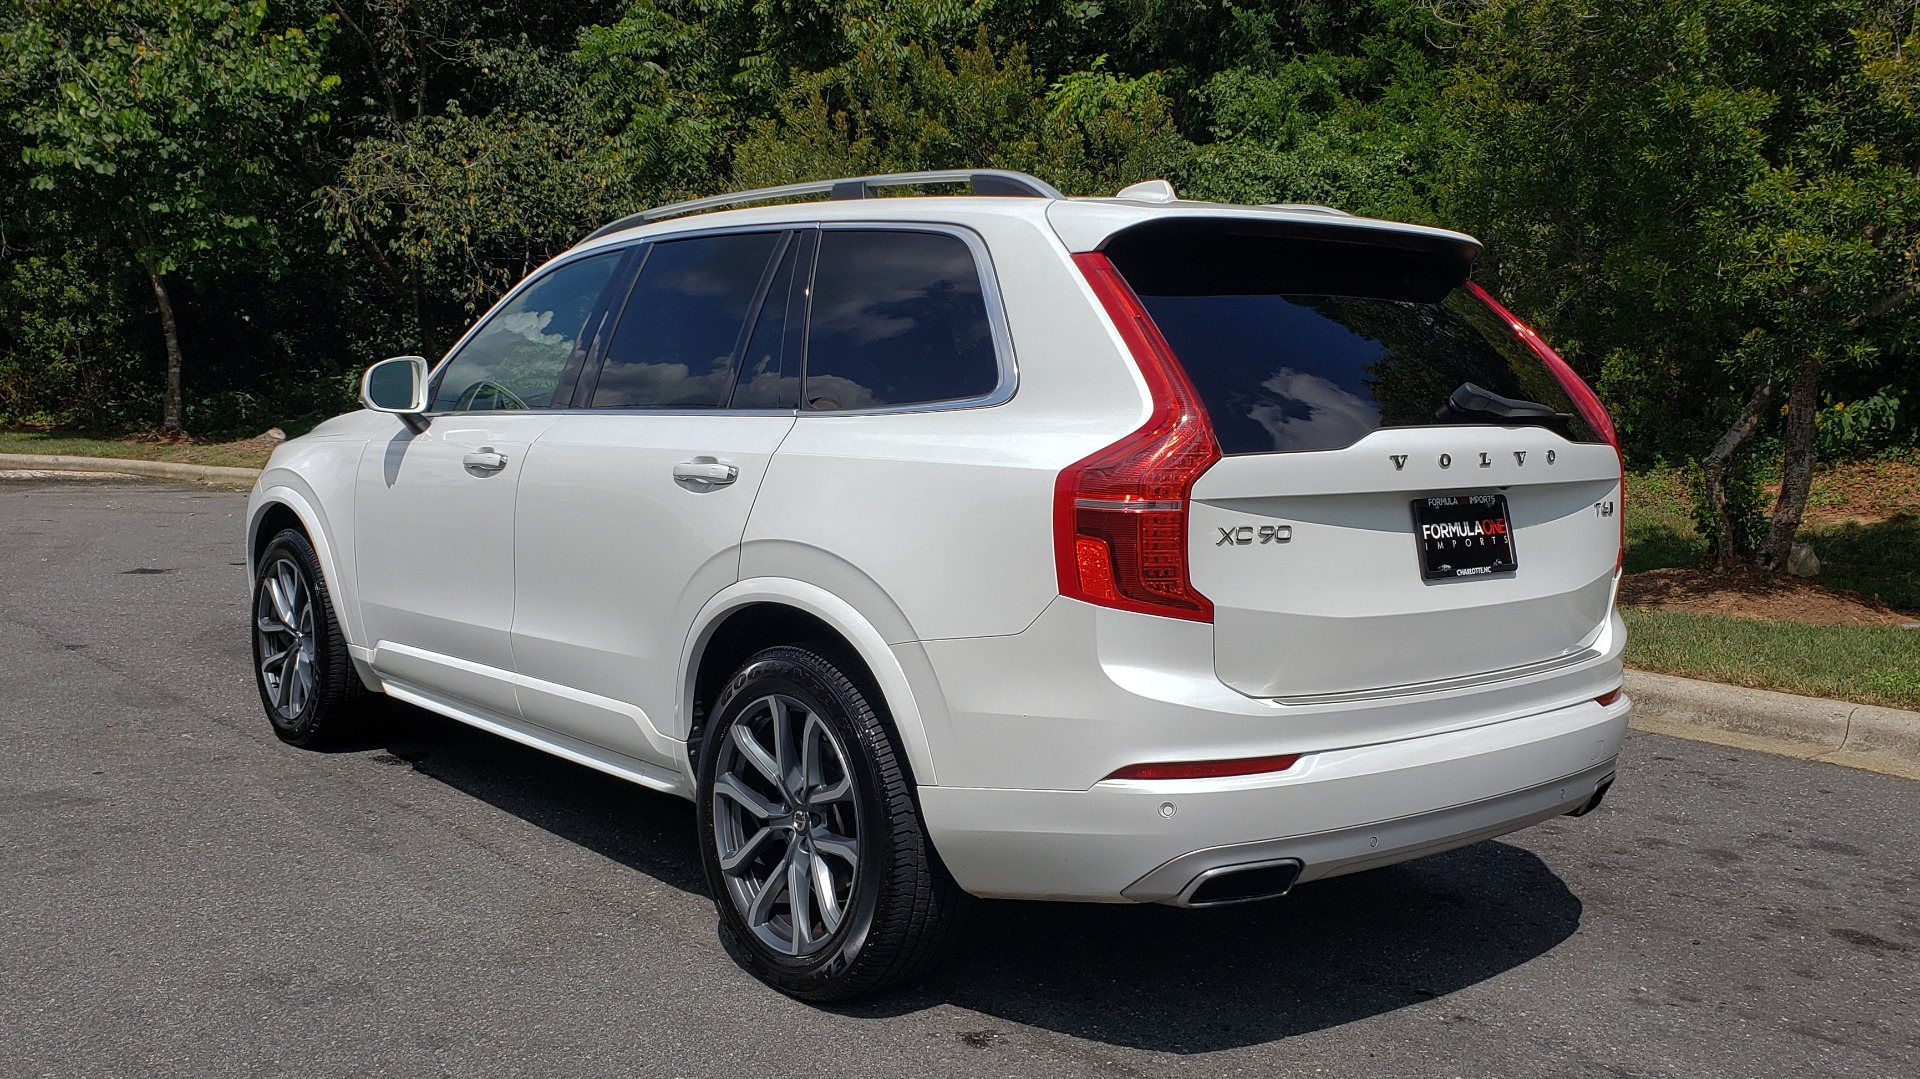 Used 2017 Volvo XC90 MOMENTUM PLUS T6 AWD / NAV / VISION / PROTECTION PKG for sale $34,995 at Formula Imports in Charlotte NC 28227 8